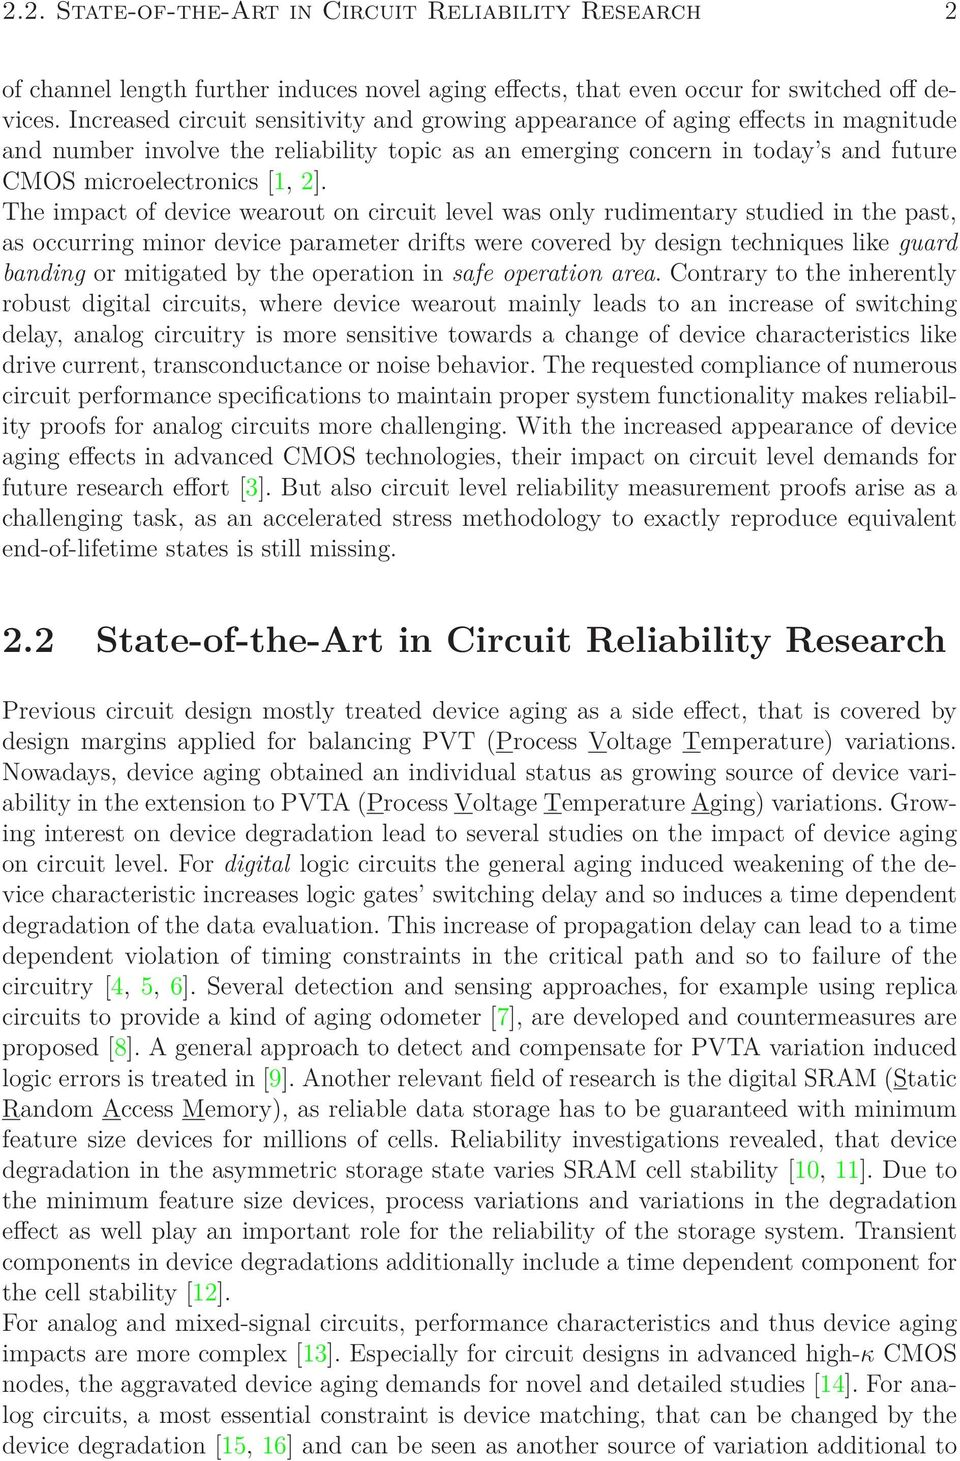 The impact of device wearout on circuit level was only rudimentary studied in the past, as occurring minor device parameter drifts were covered by design techniques like guard banding or mitigated by